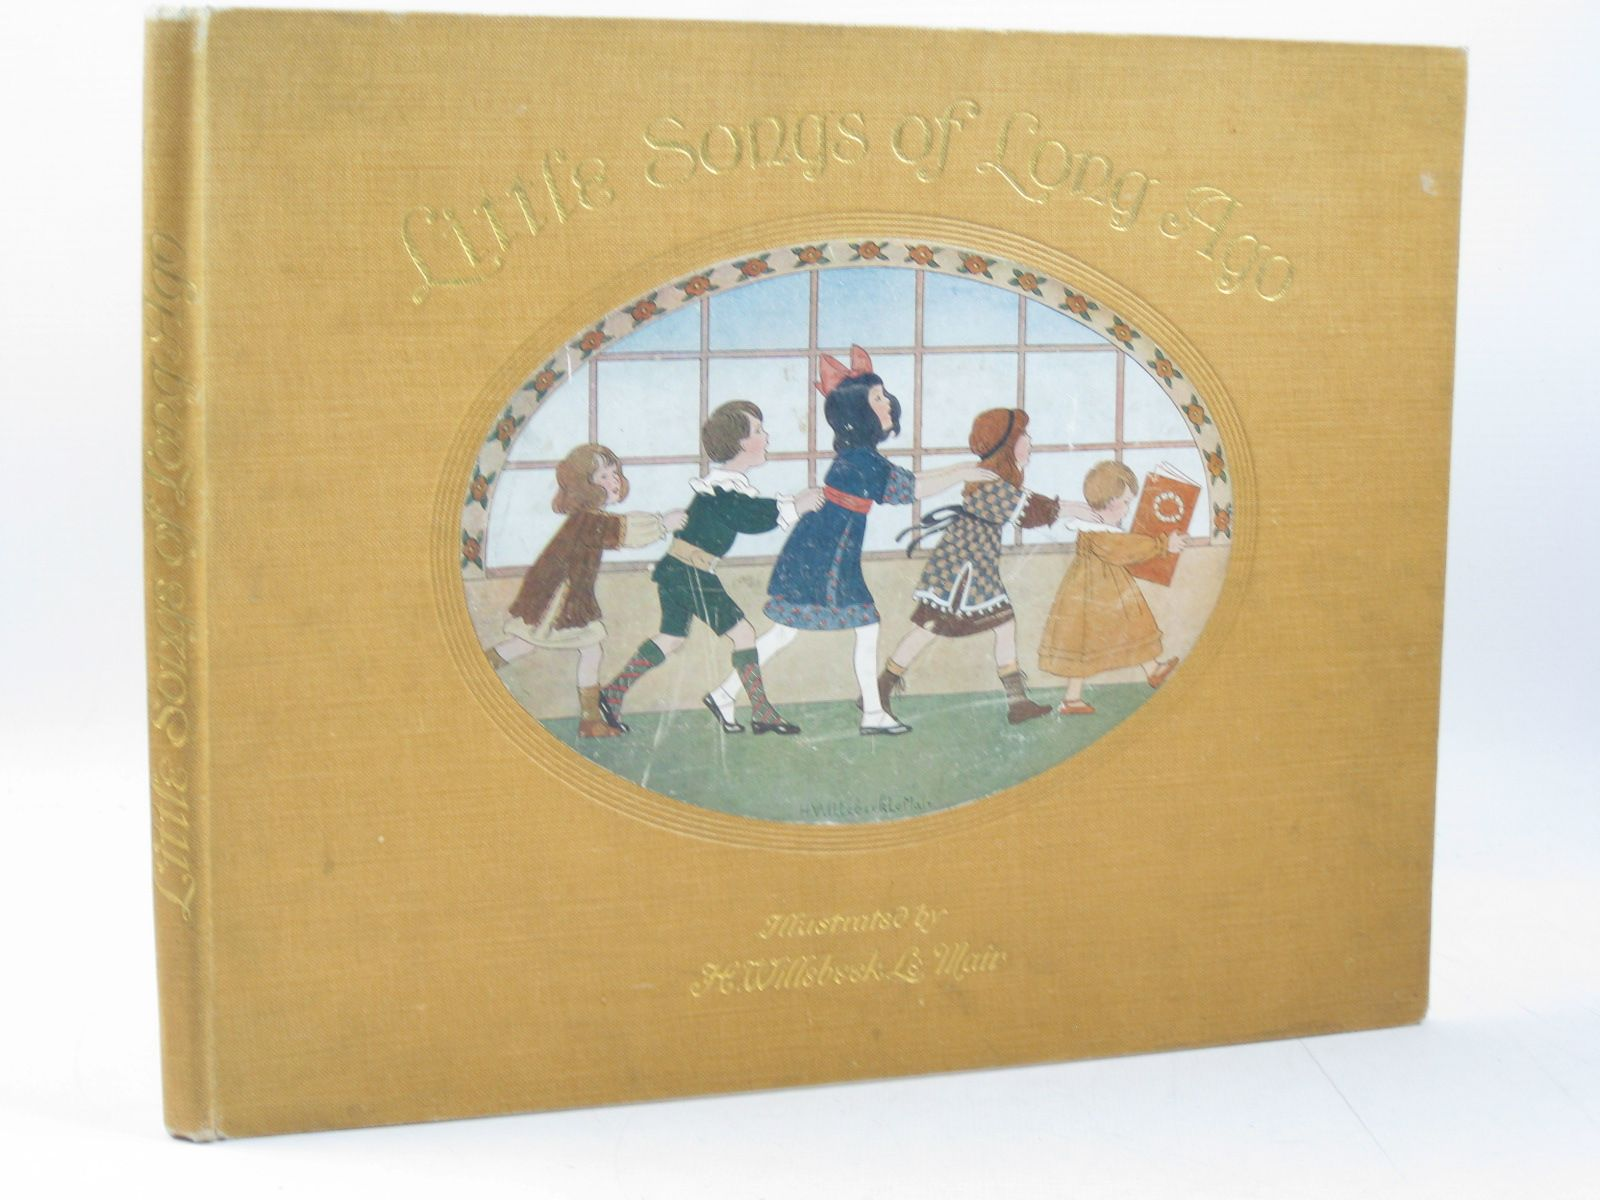 Photo of LITTLE SONGS OF LONG AGO written by Moffat, Alfred illustrated by Willebeek Le Mair, Henriette published by Augener Ltd. (STOCK CODE: 1314236)  for sale by Stella & Rose's Books